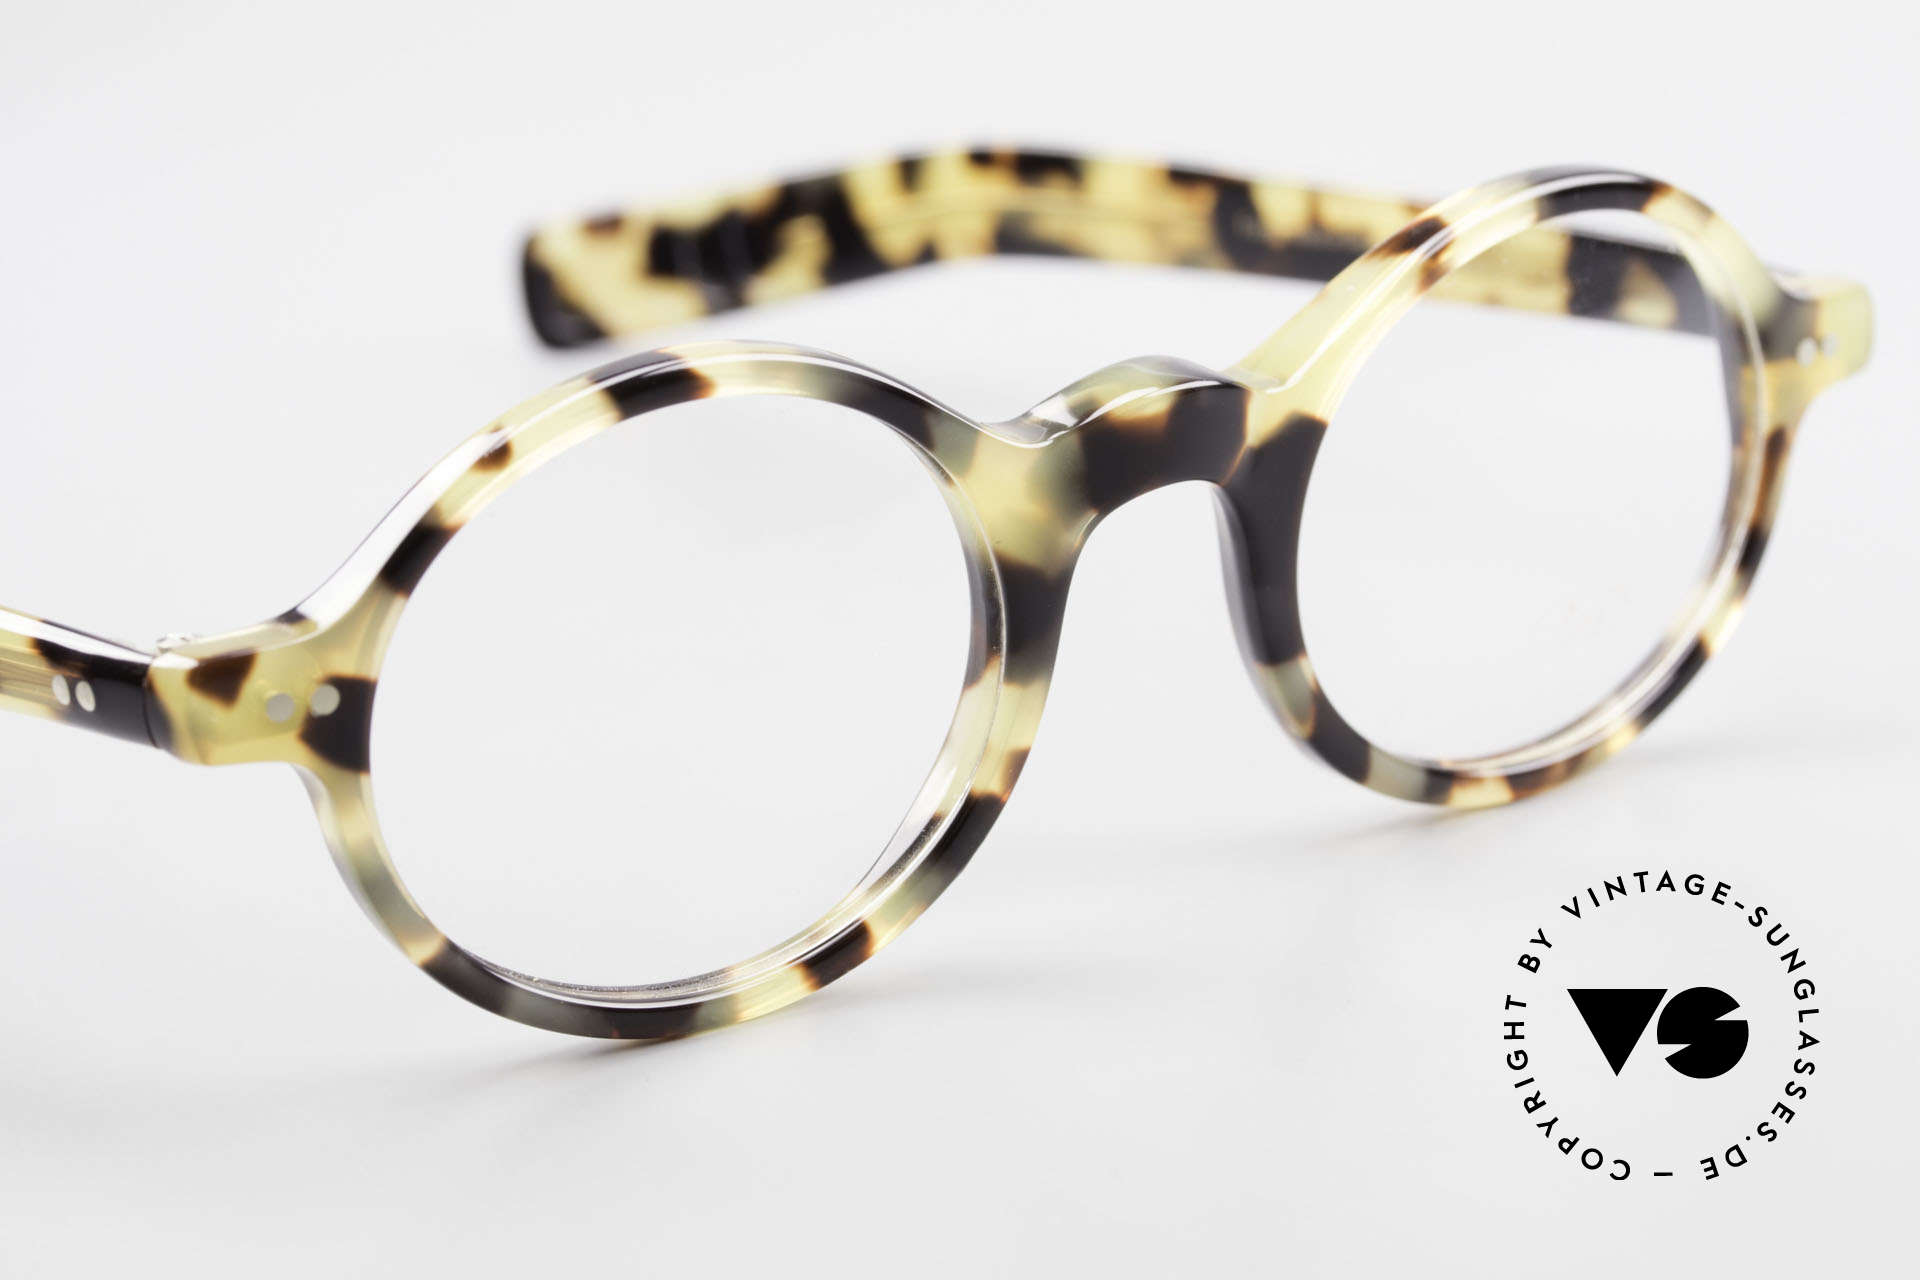 Lunor A52 Oval Lunor Glasses Acetate, the demo lenses can be replaced with optical (sun) lenses, Made for Men and Women